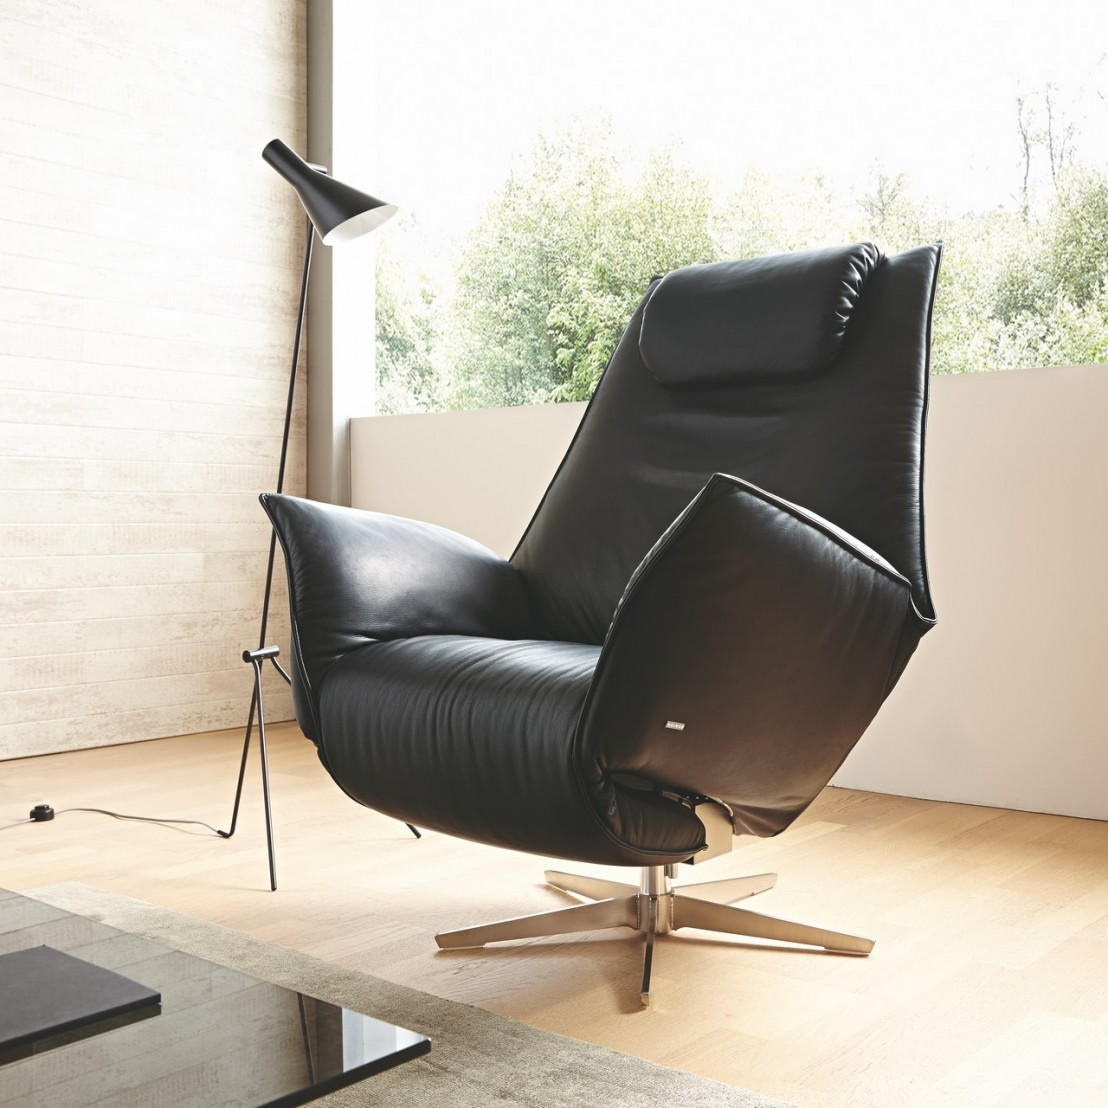 lord jm un superbe fauteuil relax. Black Bedroom Furniture Sets. Home Design Ideas